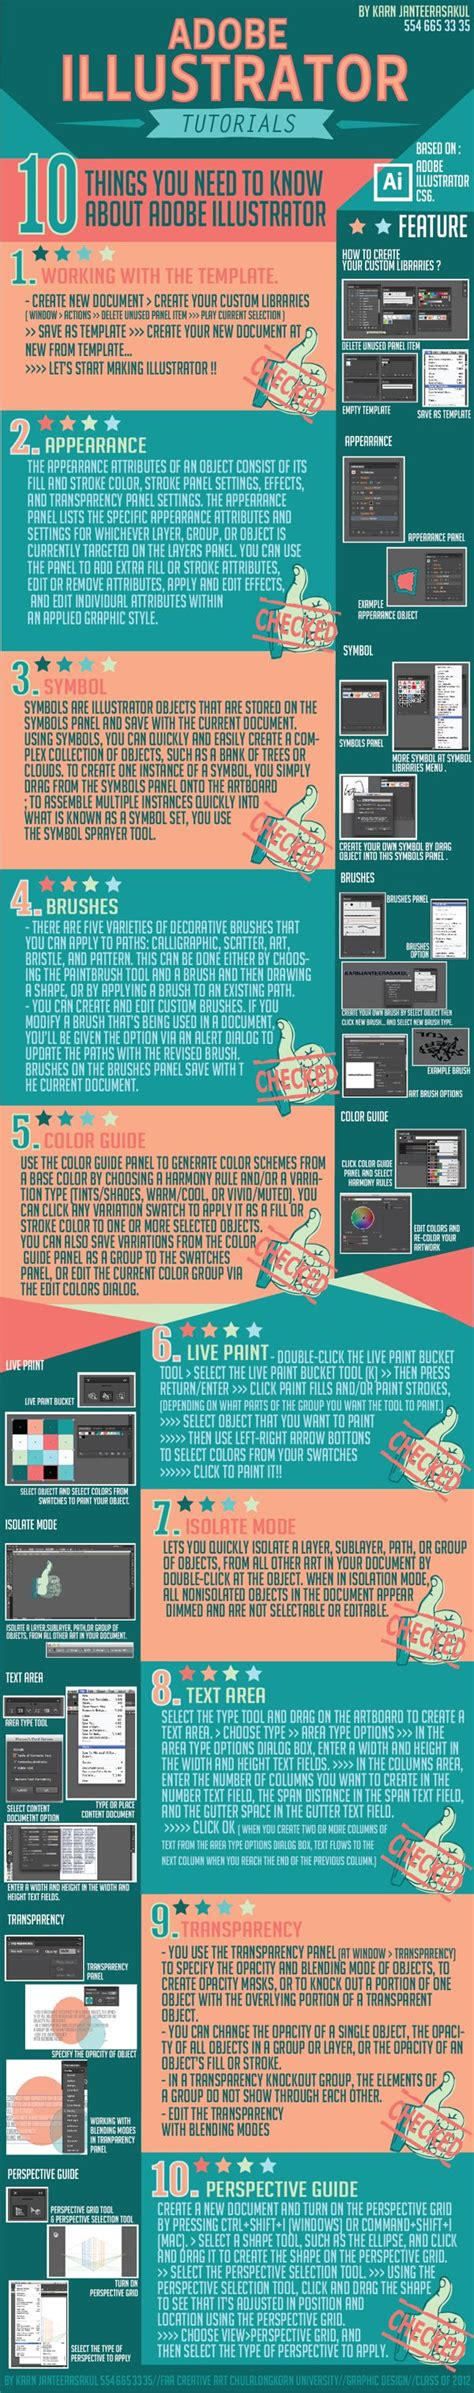 indesign tutorial infographic 17 best ideas about adobe on pinterest indesign software